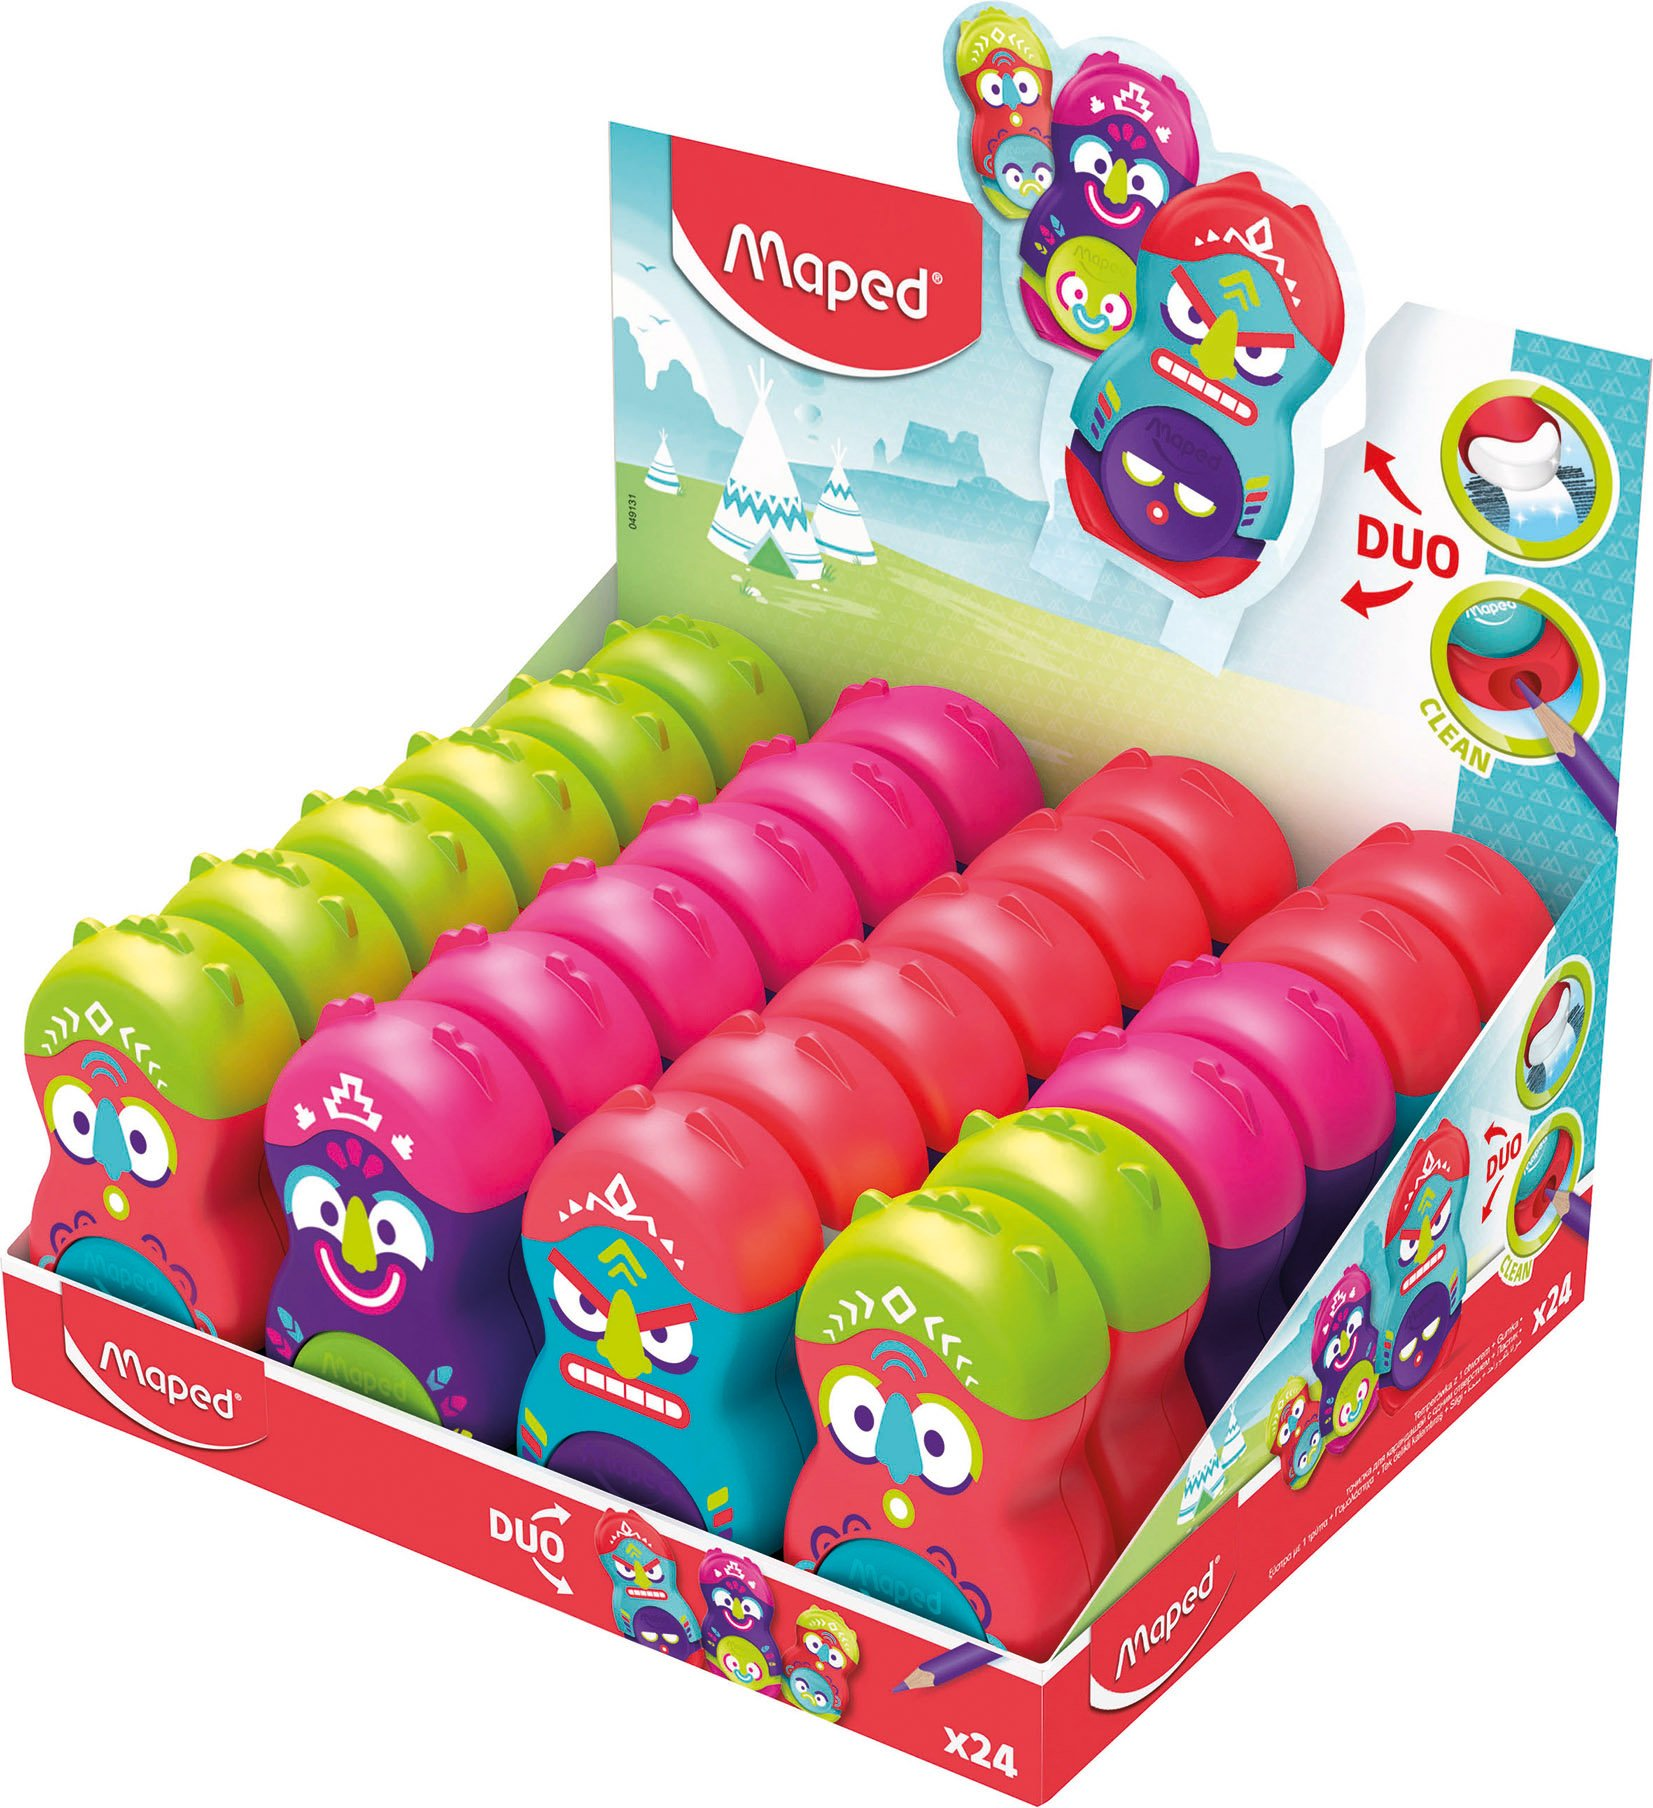 Maped Loopy Totem Duo Eraser and Sharpener (Box of 24 in Assorted Colours) by Maped (Image #1)